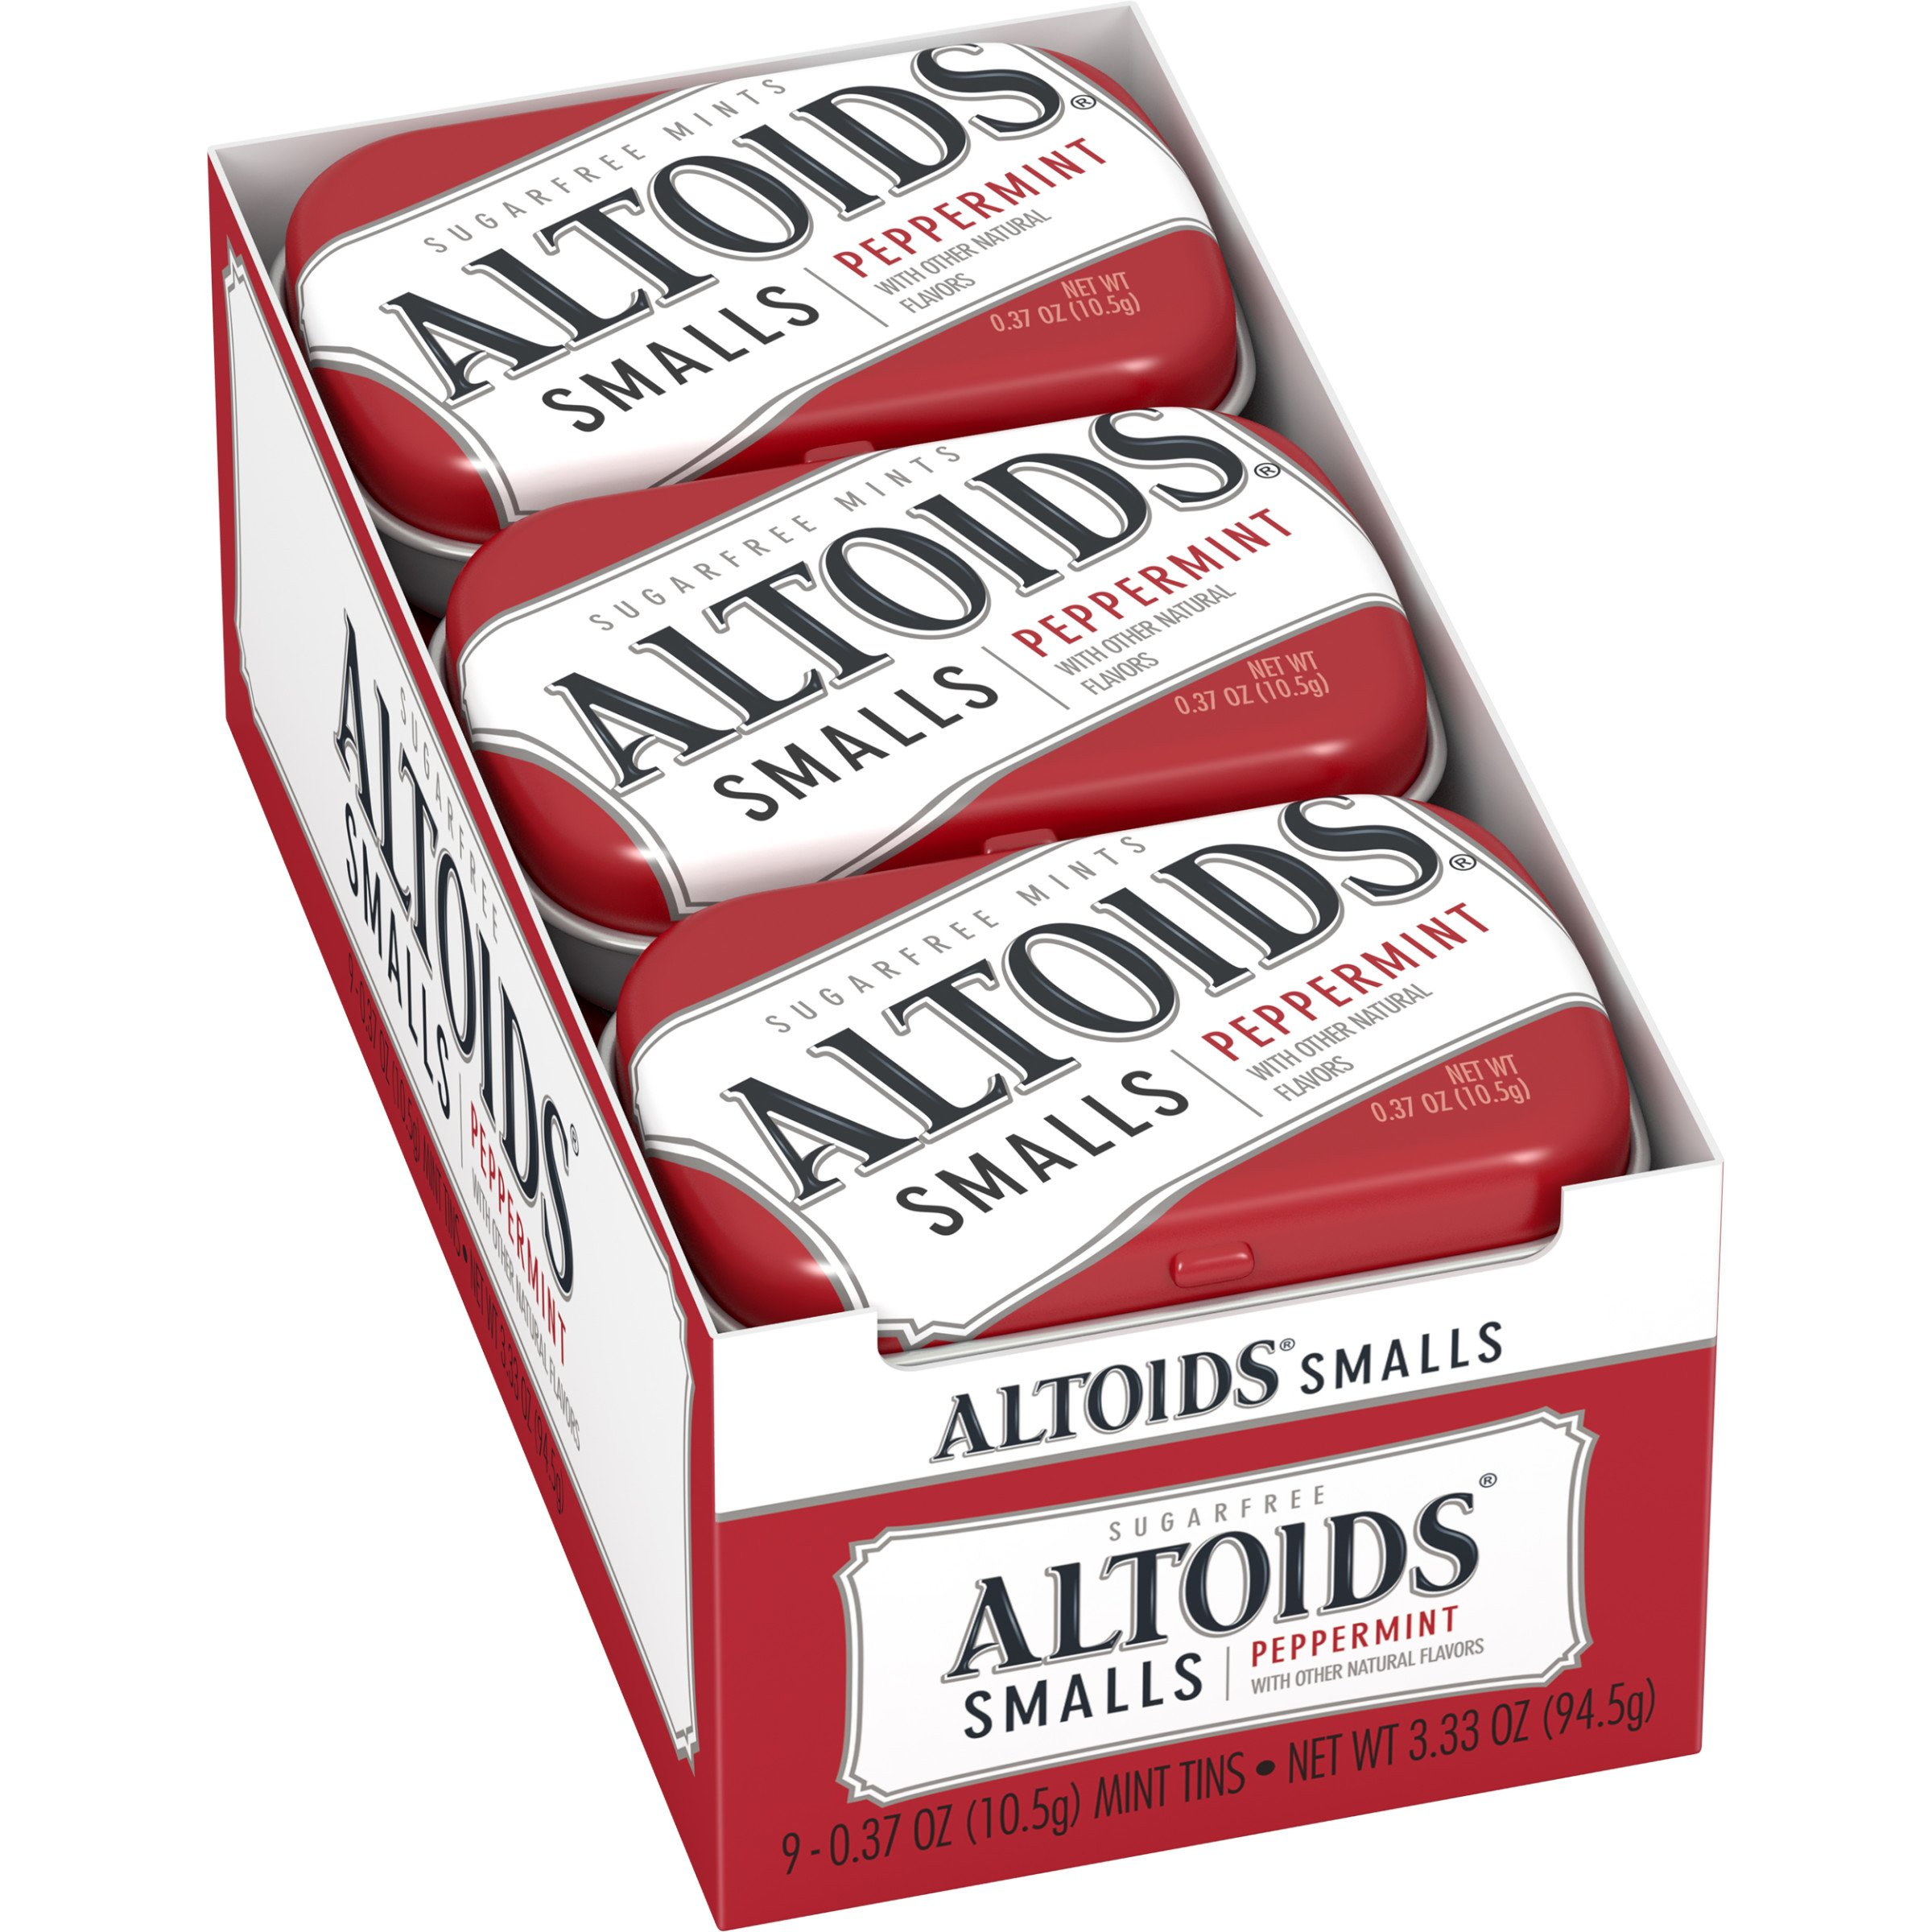 Altoids Smalls Peppermint Sugarfree Mints, 0.37 Ounce, 9 Count